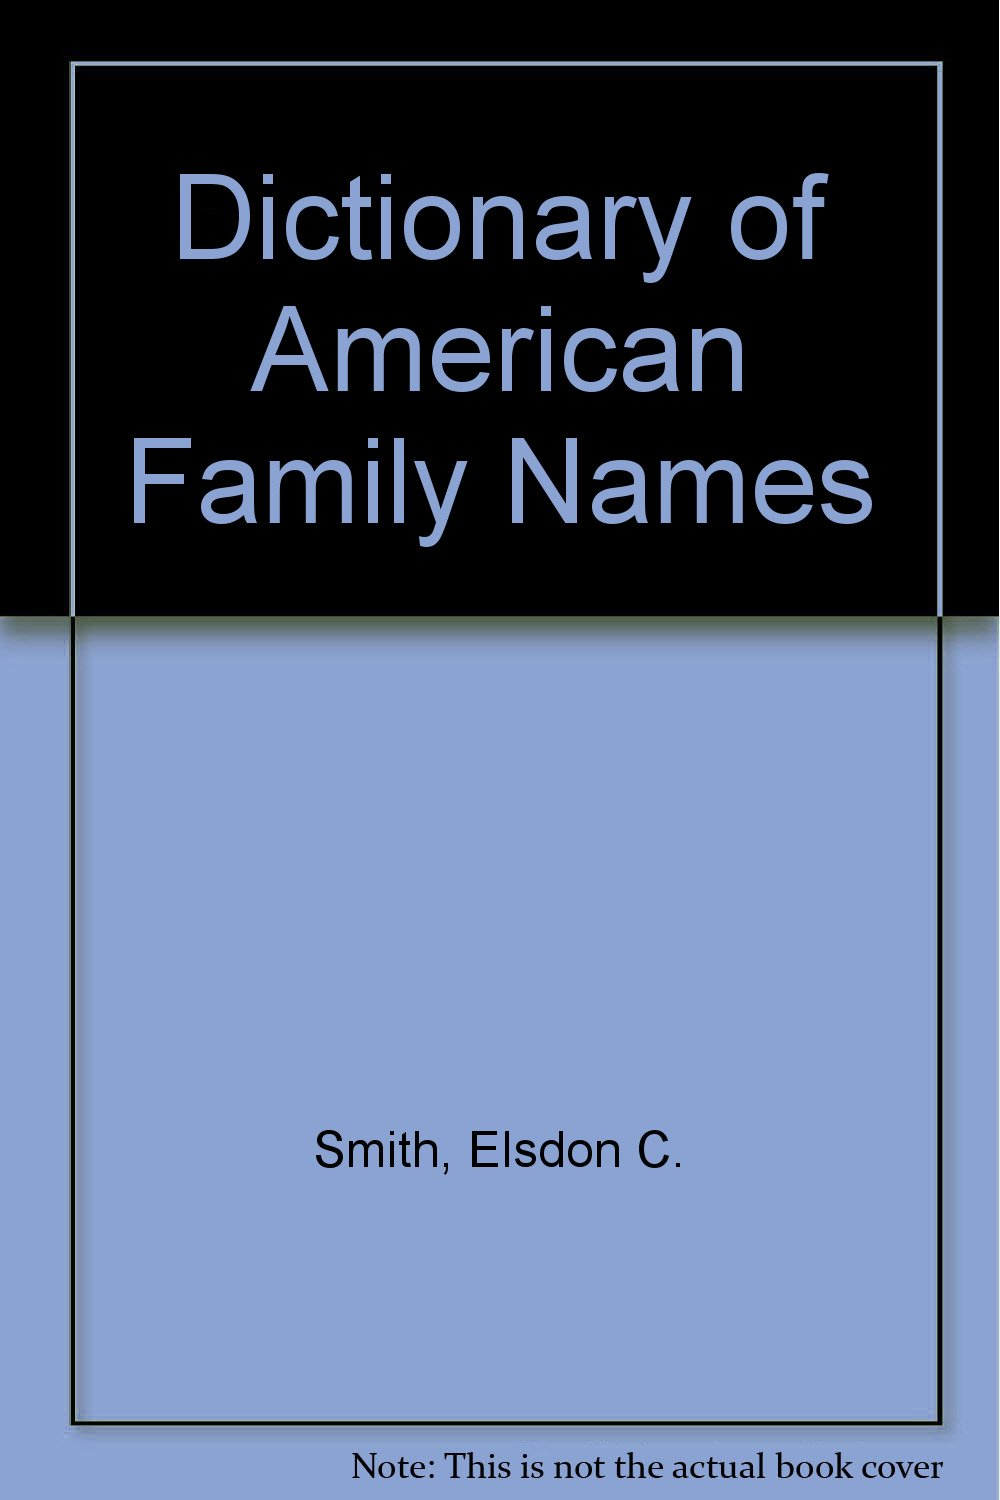 Dictionary of American family names: Elsdon Coles Smith: Amazon.com: Books